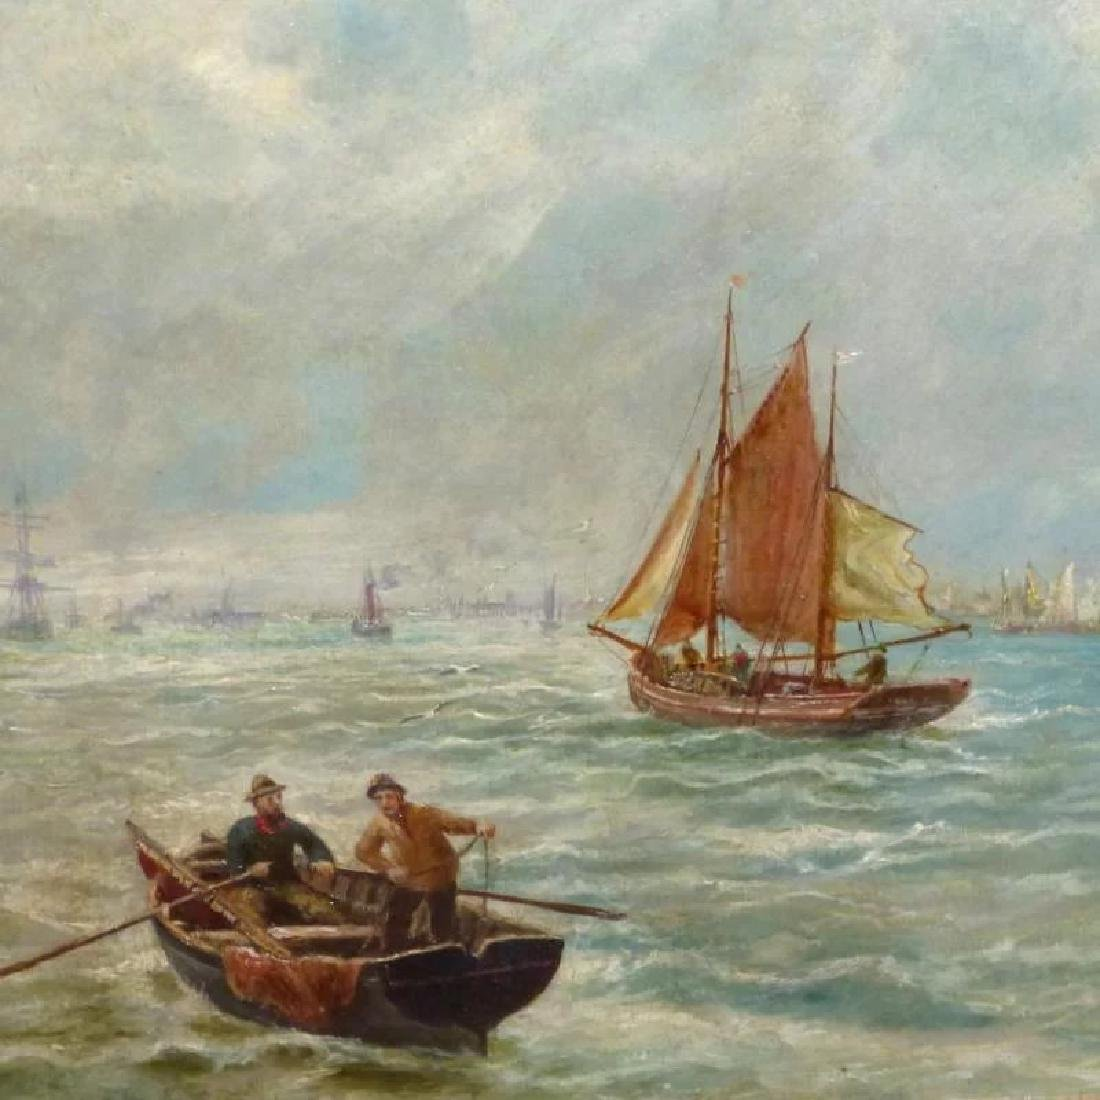 Antique Shipping Scene on the Tyne River, by Bernard B. - 5